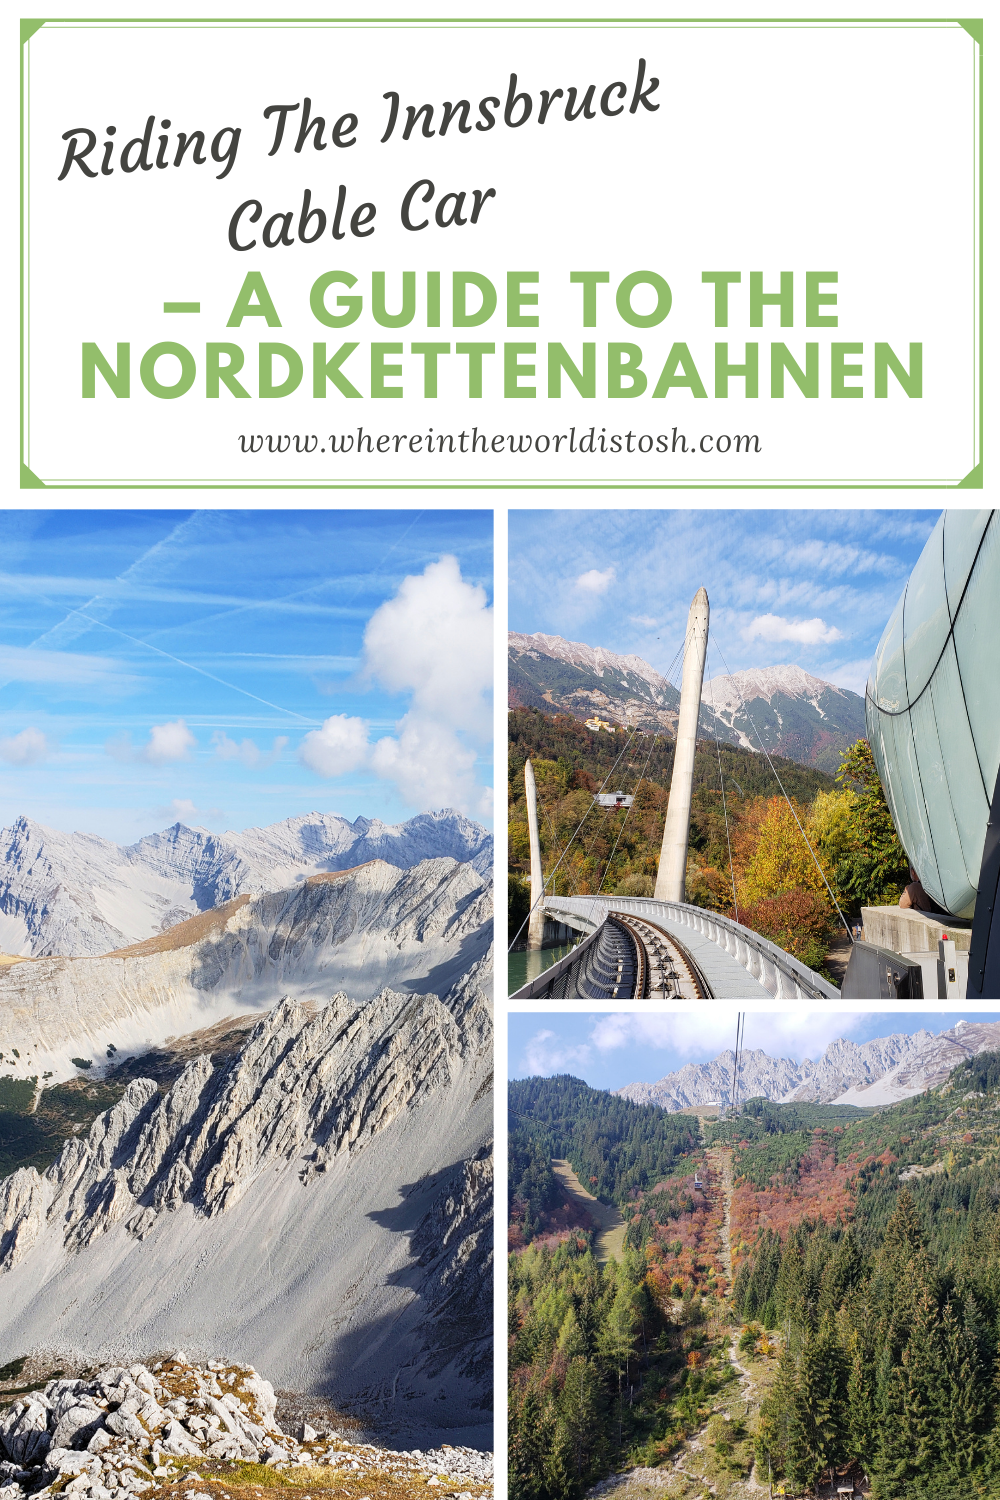 Riding The Innsbruck Cable Car Guide To The Nordkettenbahnen